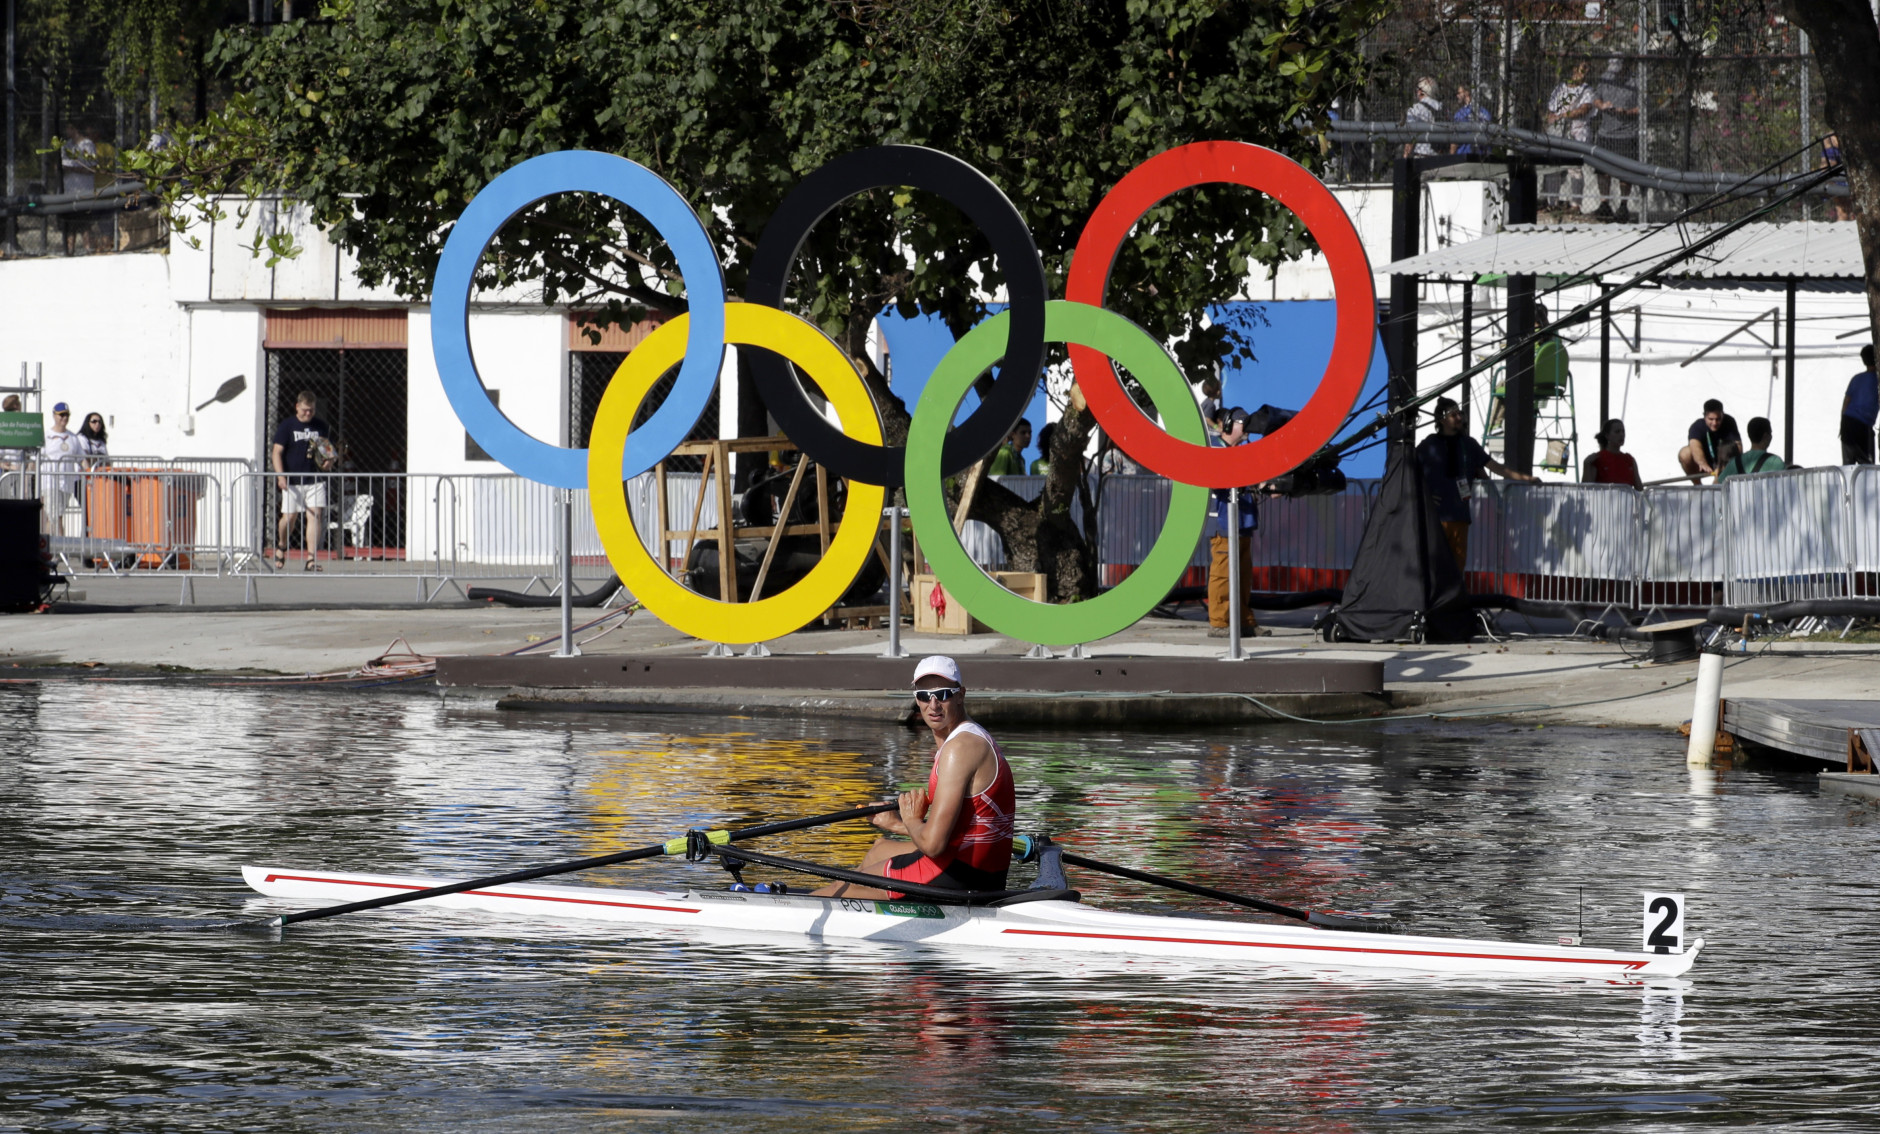 Natan Wegrzycki-Szymczyk, of Poland, looks at the results after competing in the men's single scull heat during the 2016 Summer Olympics in Rio de Janeiro, Brazil, Saturday, Aug. 6, 2016. (AP Photo/Andre Penner)